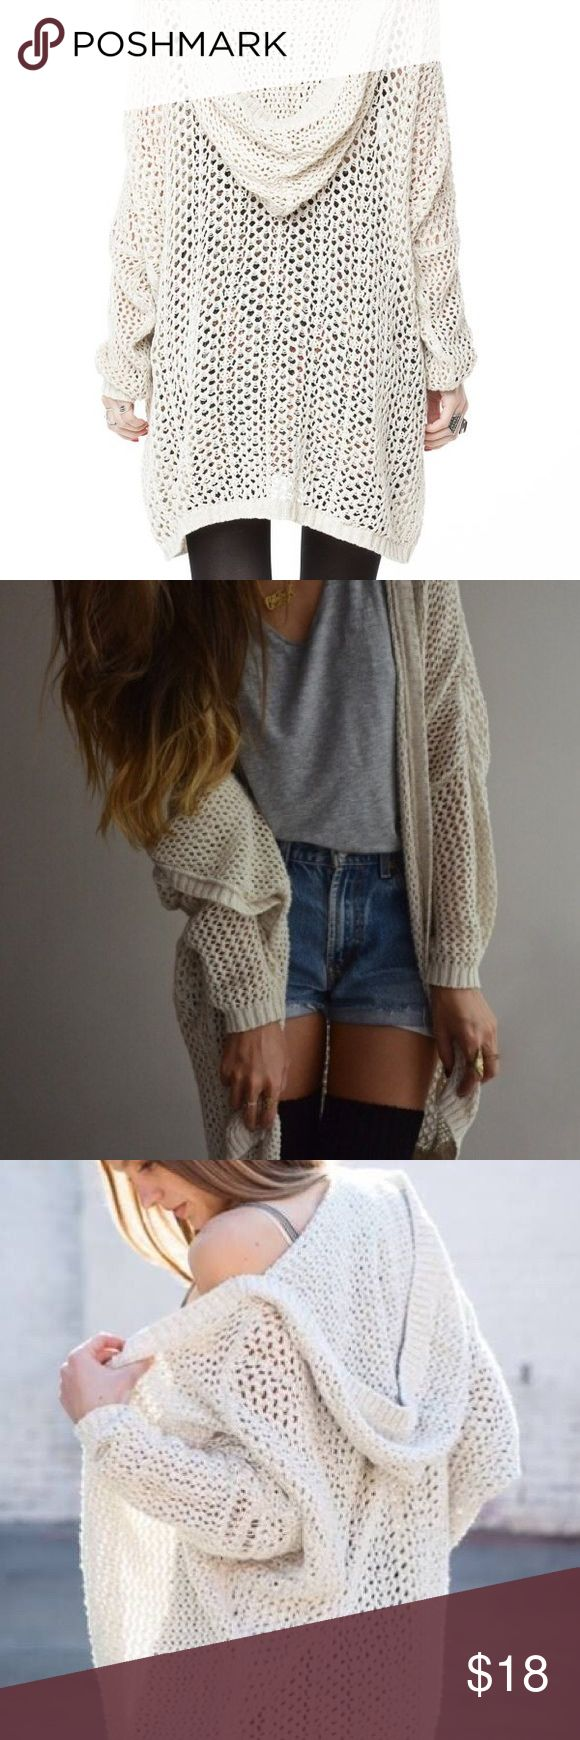 Brandy Melville Moselle Cardigan Brandy Melville Cardigan. Tan color and one tear in the shoulder... this is definitely fixable! Otherwise in great condition. Brandy Melville Sweaters Cardigans